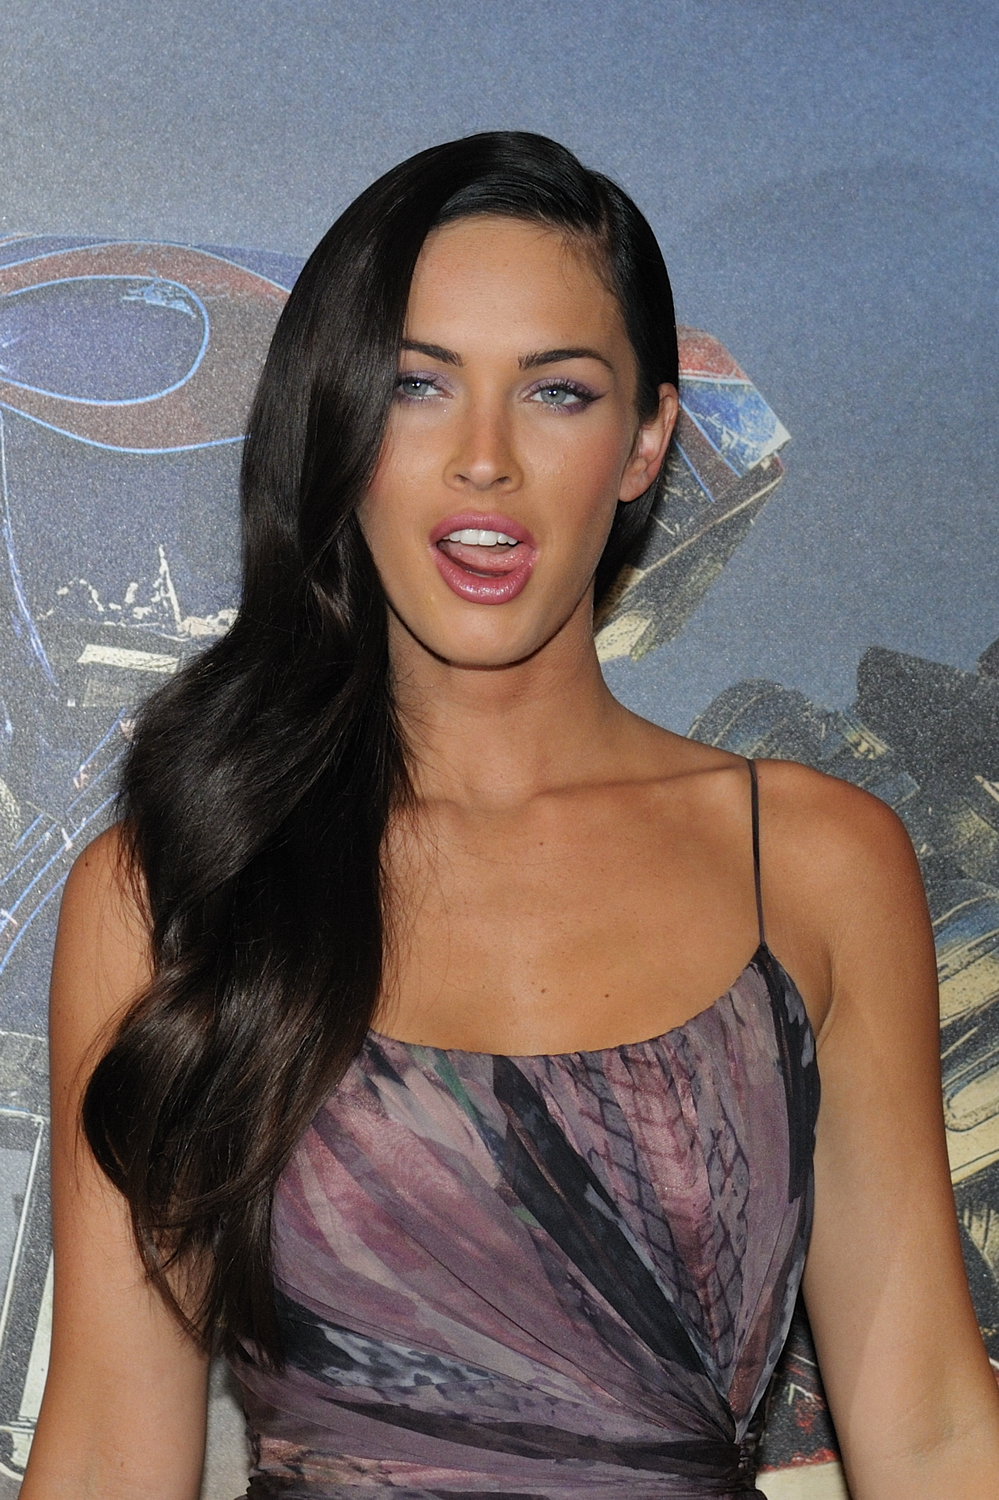 File:Megan Fox promoting Transformers in Paris 2.jpg